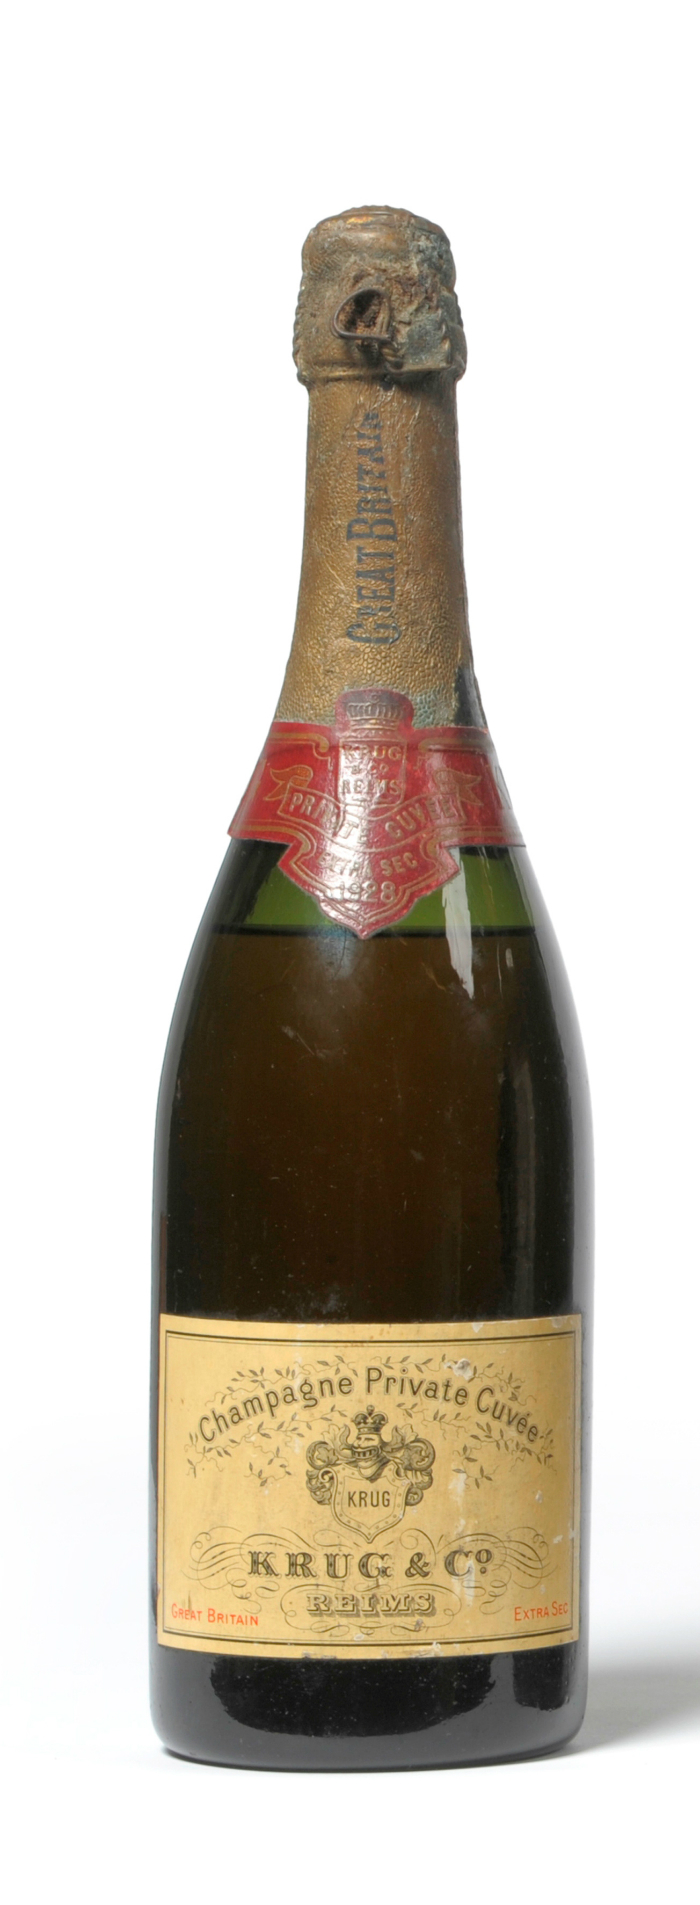 Top 10 best Champagnes To Celebrate The New Year Top 10 best Champagnes To Celebrate The New Year Top 10 best Champagnes To Celebrate The New Year 1928 Krug